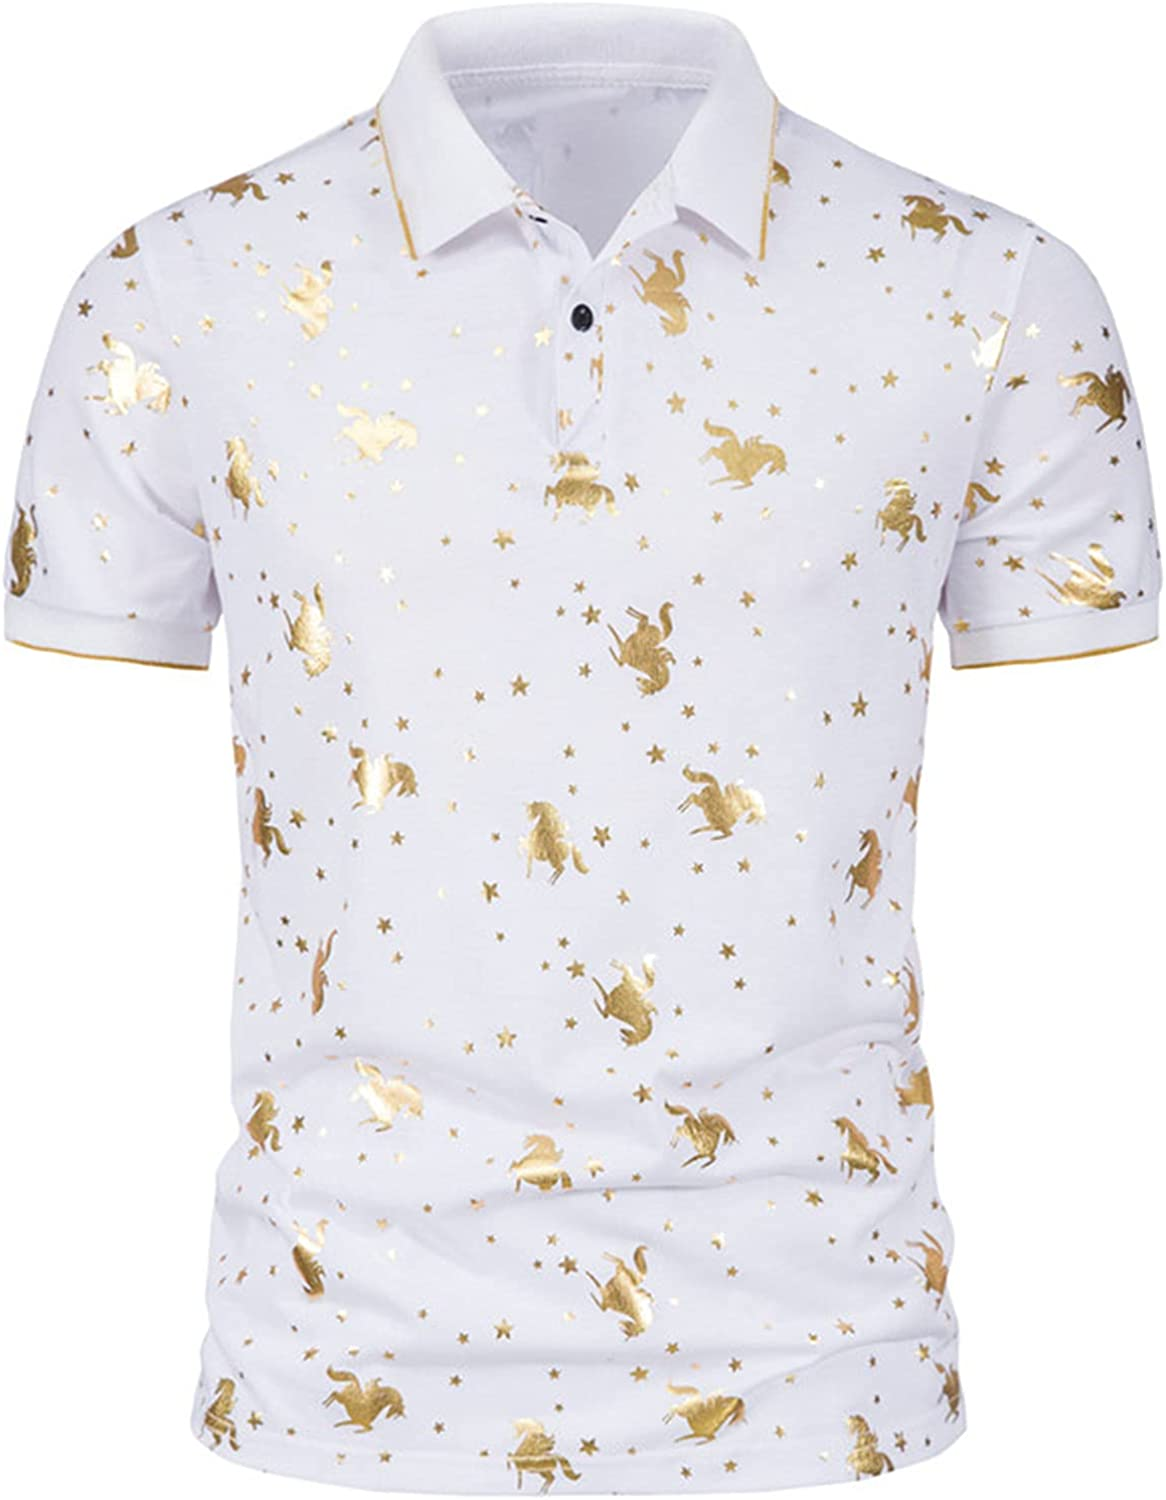 Dri Fit Polo Shirts for Men Big and Tall Quick Dry T Shirt Summer Bronzing Print Short Sleeved Lapel Blouse